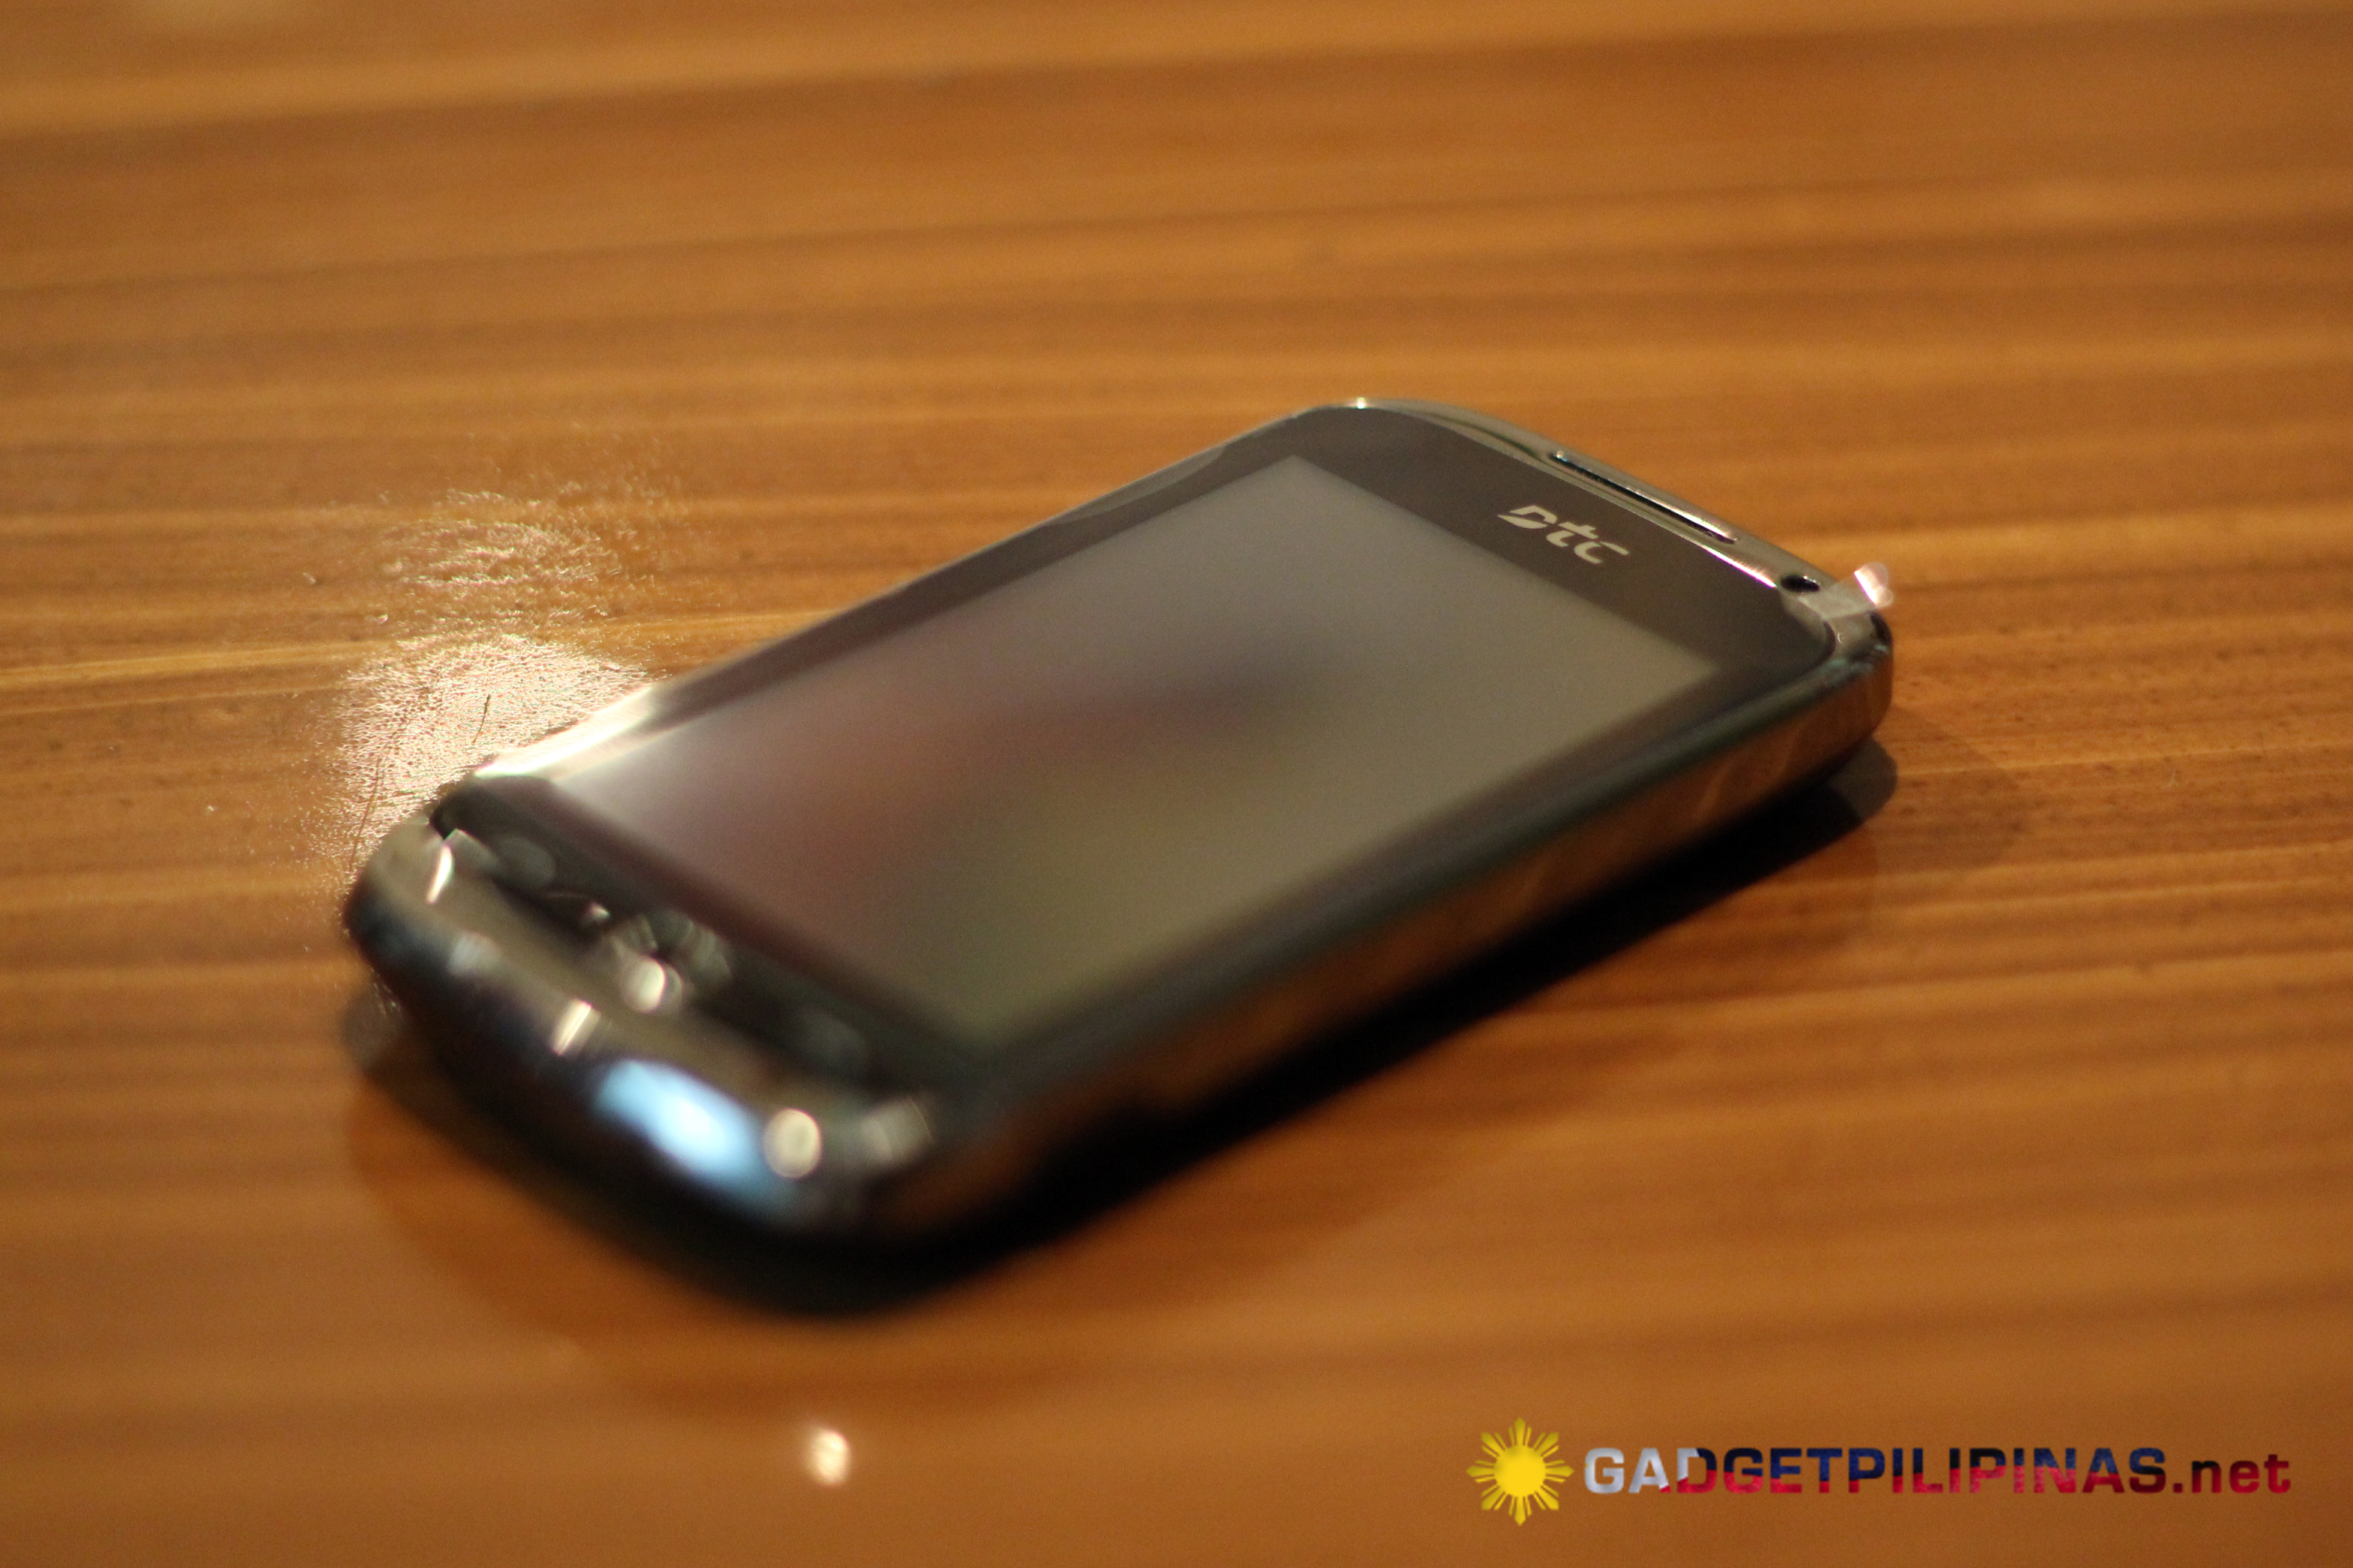 DTC GT2 Mobile Phone Review